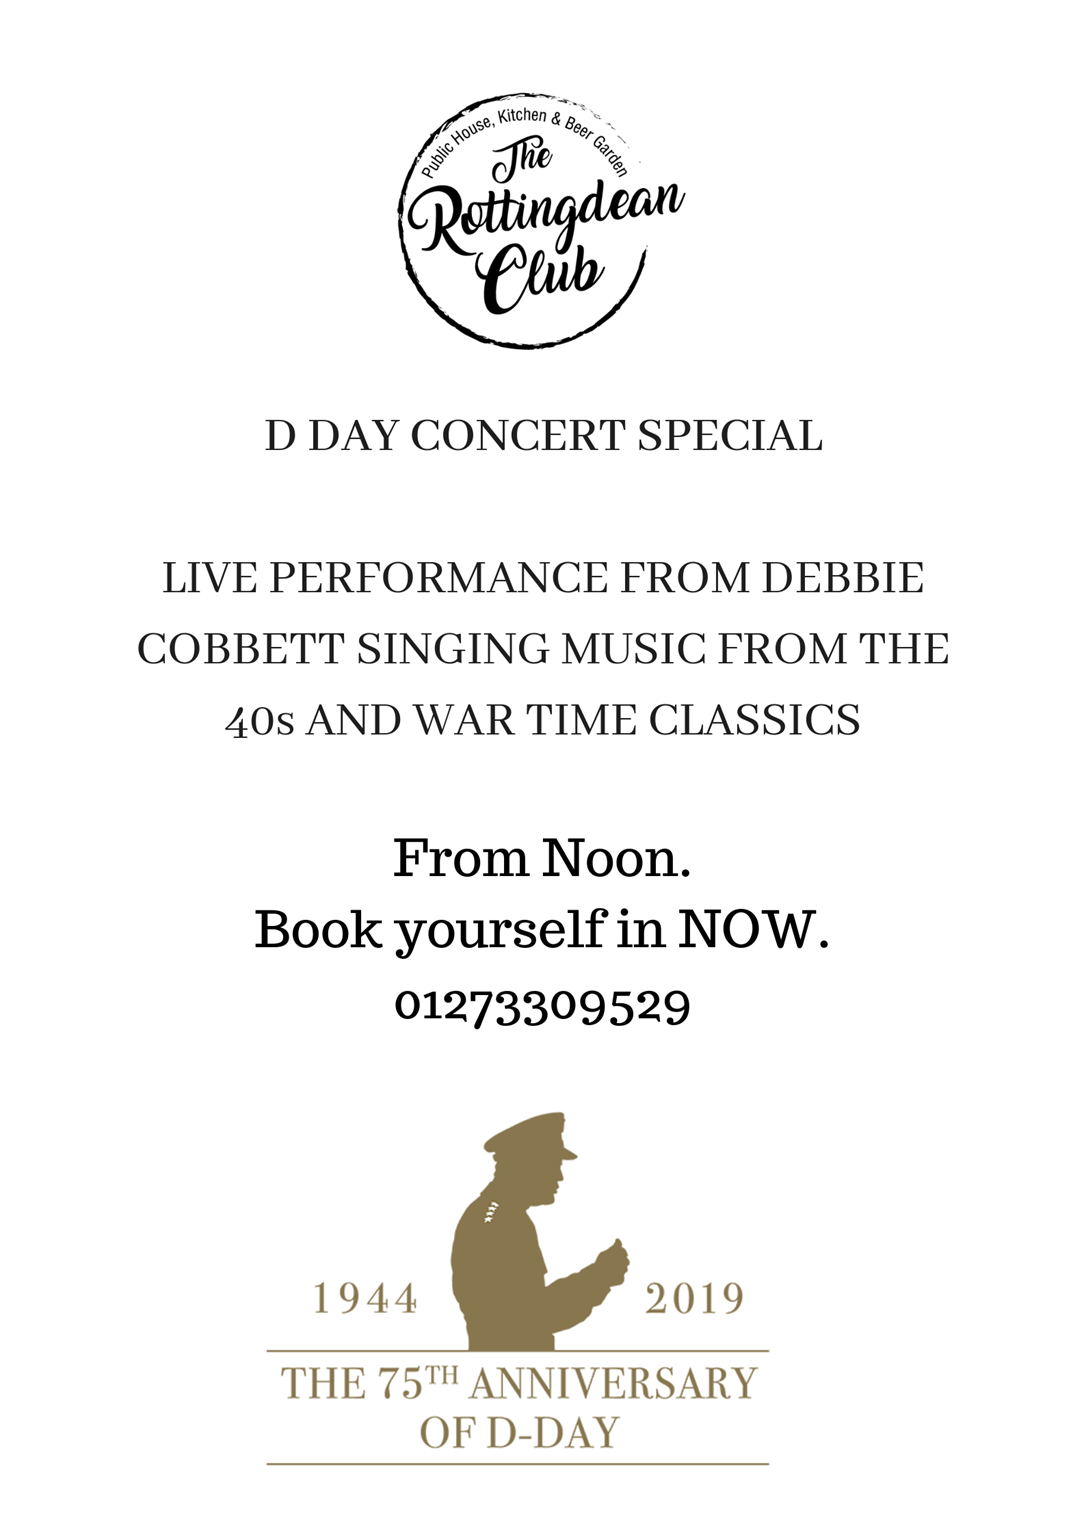 D DAY LUNCHTIME CONCERT